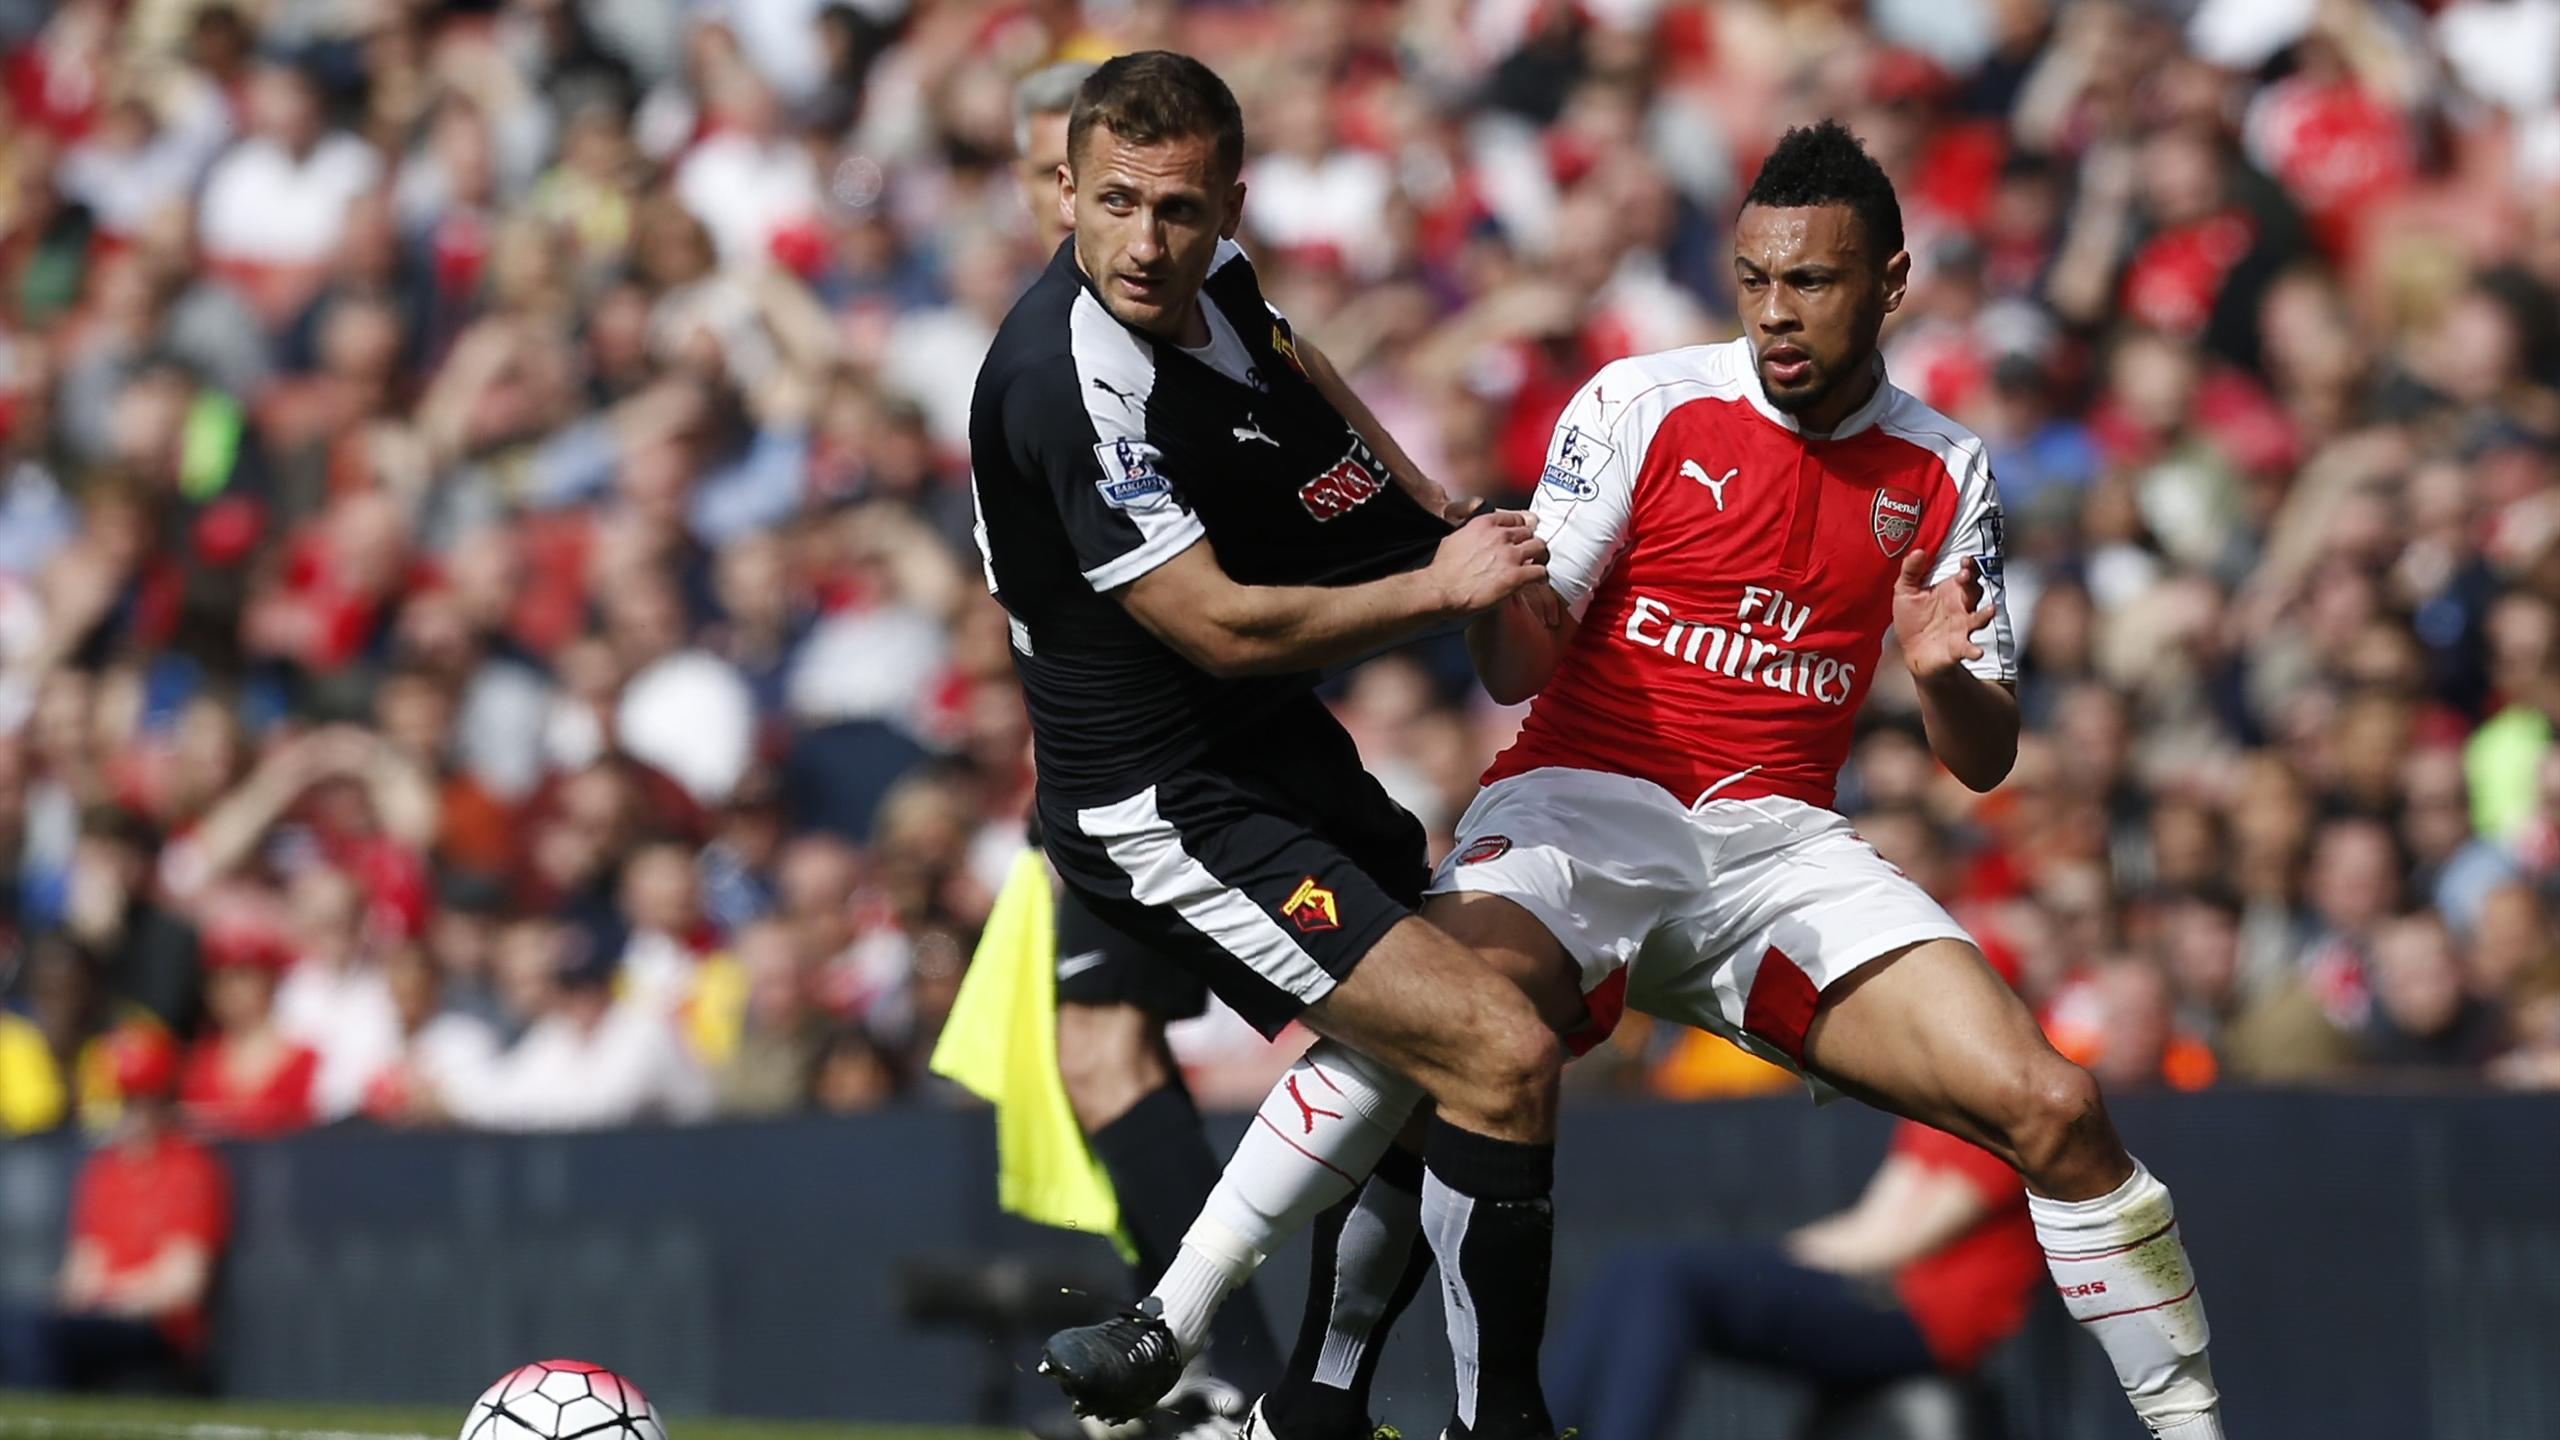 Watford's Yugoslavian-born Swiss midfielder Almen Abdi (L) vies with Arsenal's French midfielder Francis Coquelin